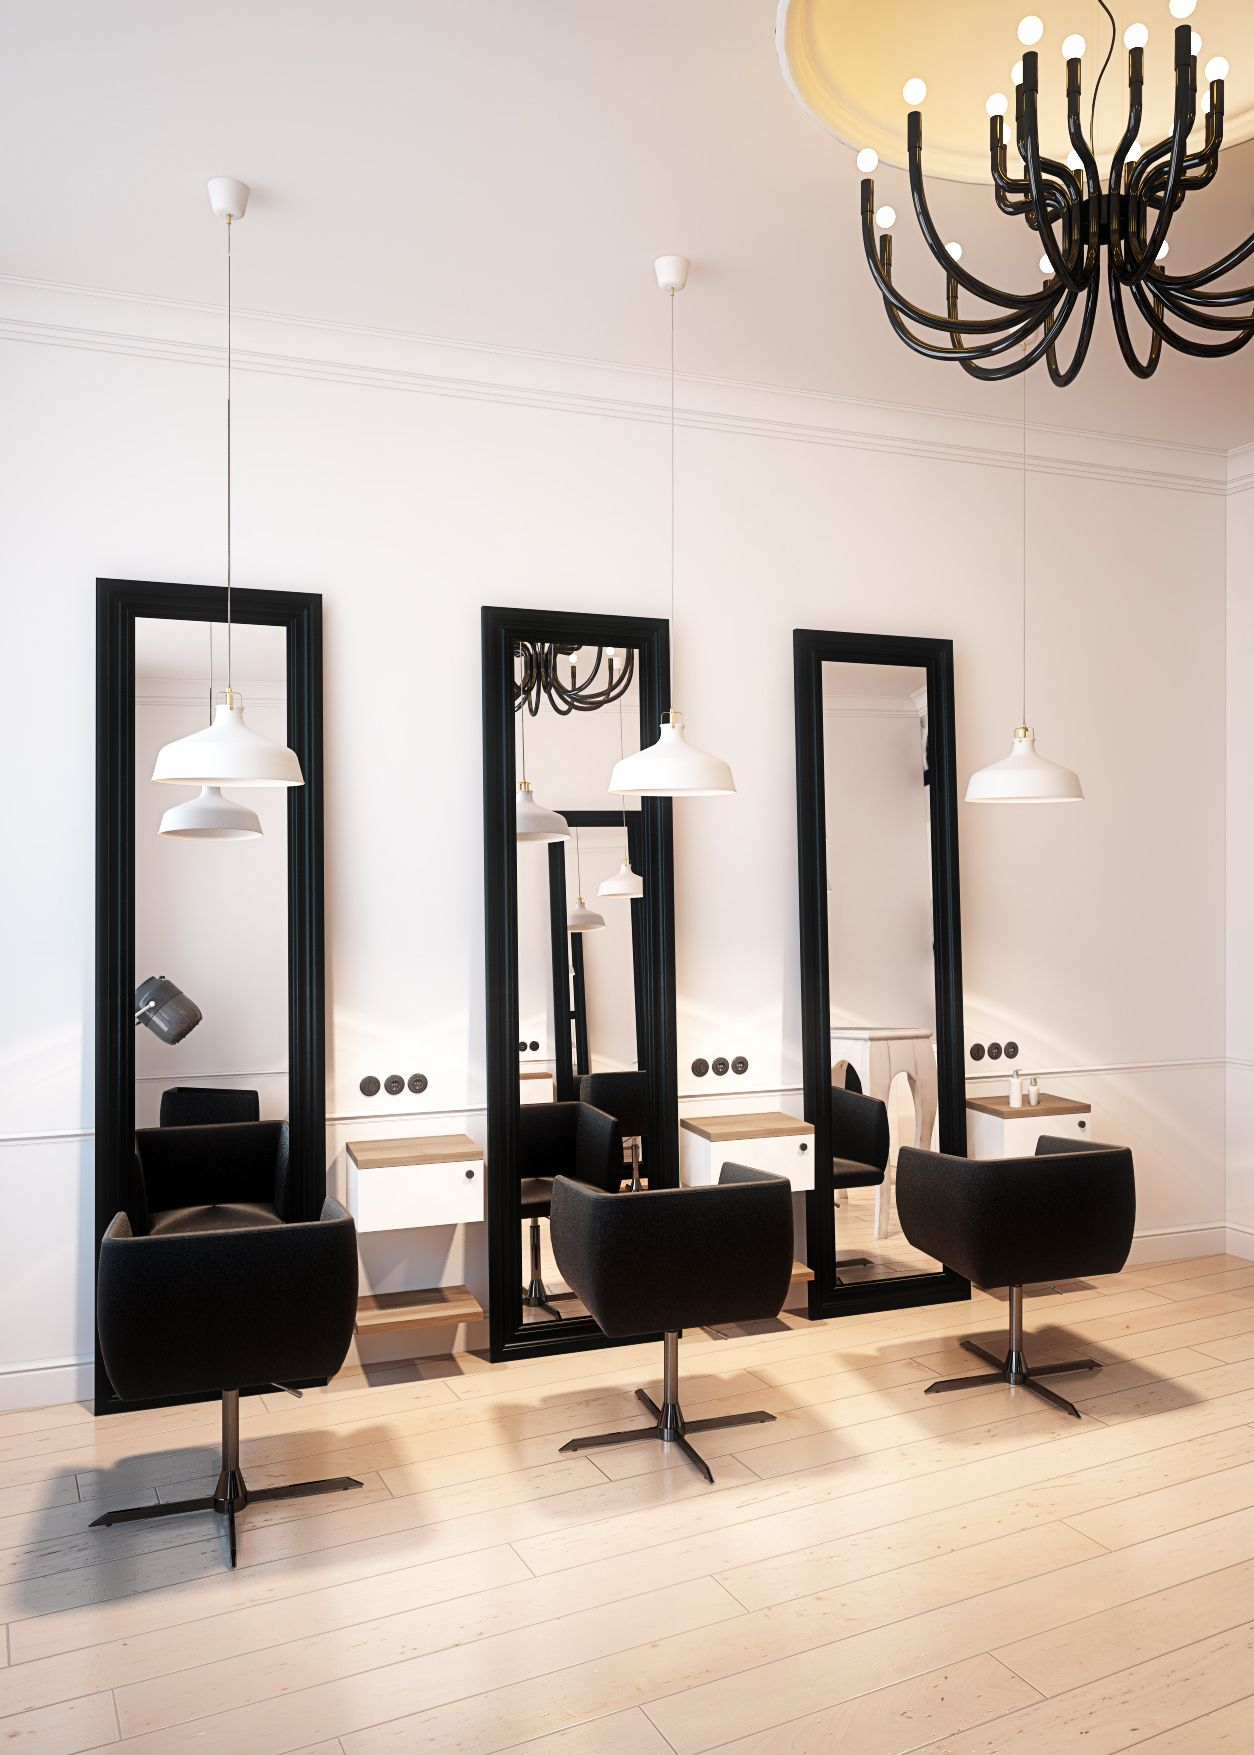 Hairdresser interior design in bytom poland archi group for Interieur stylist